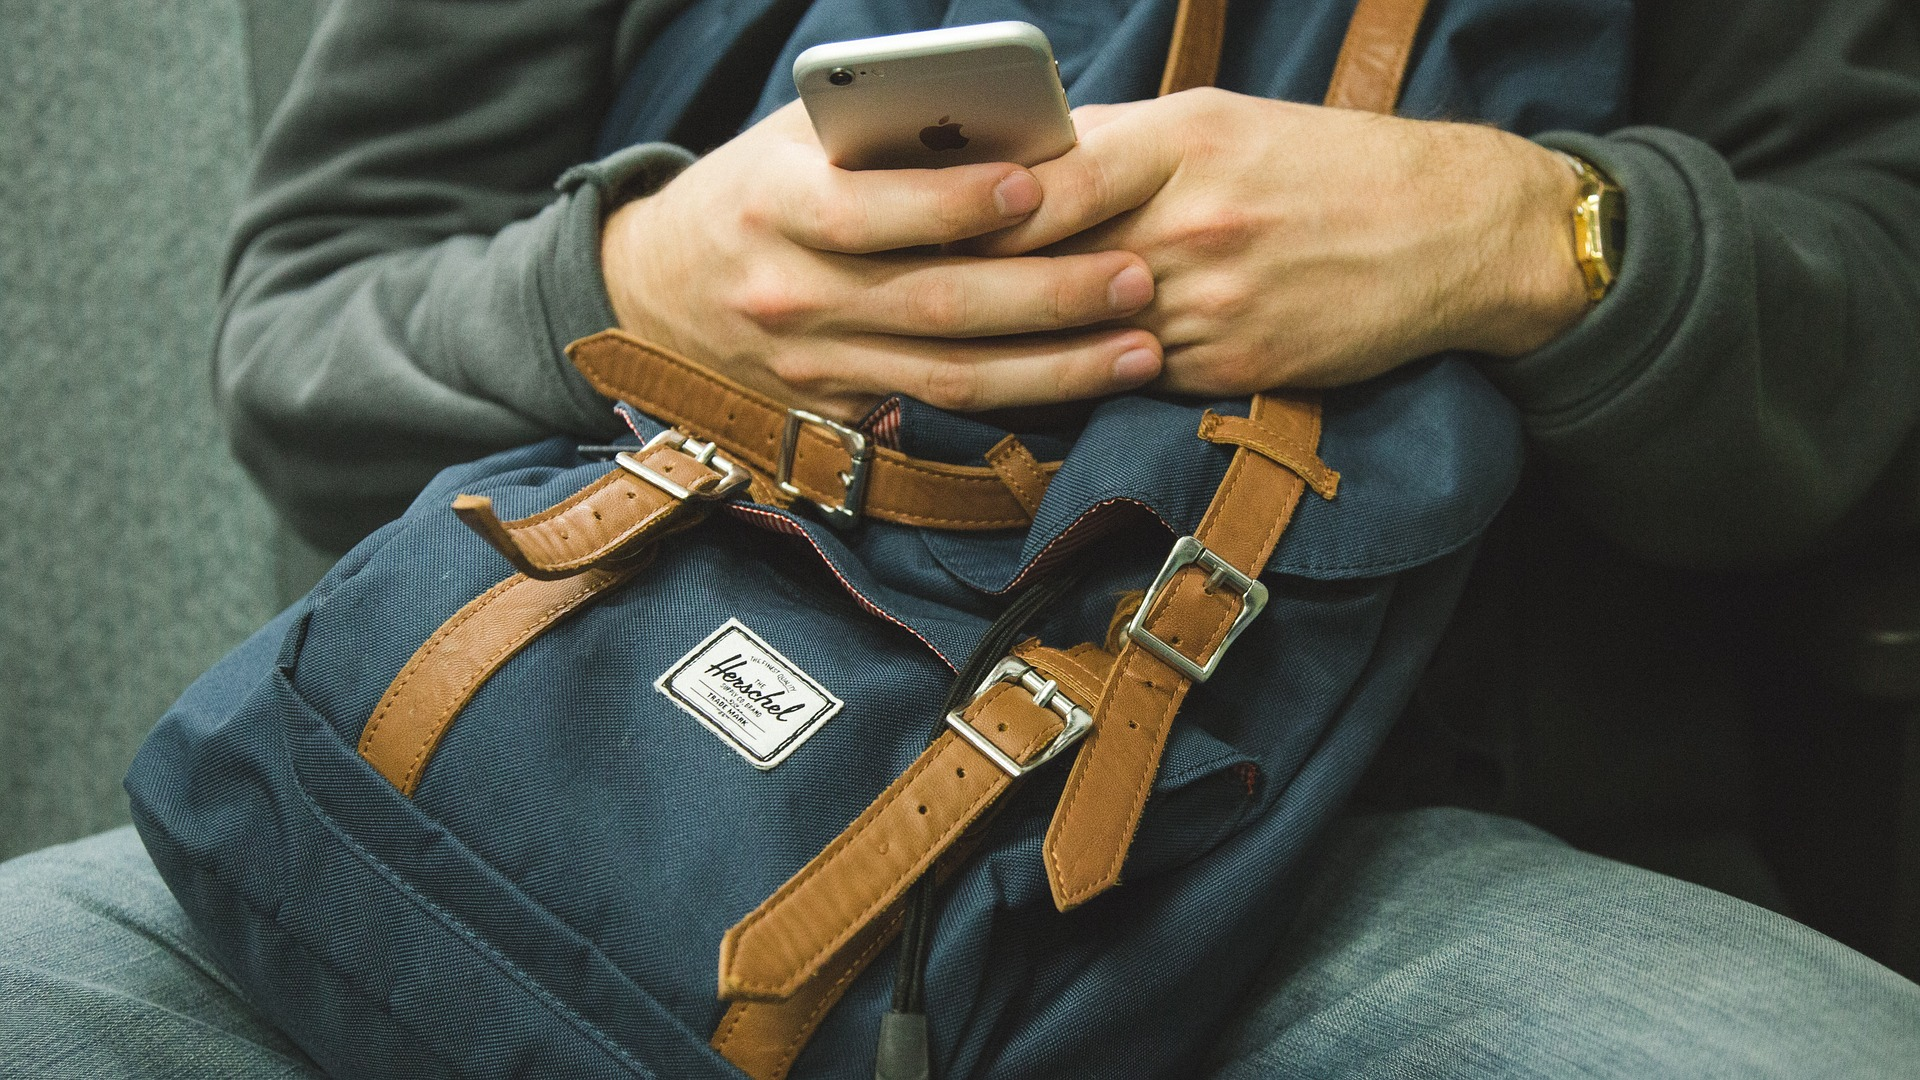 What I learnt when I stopped texting for a day